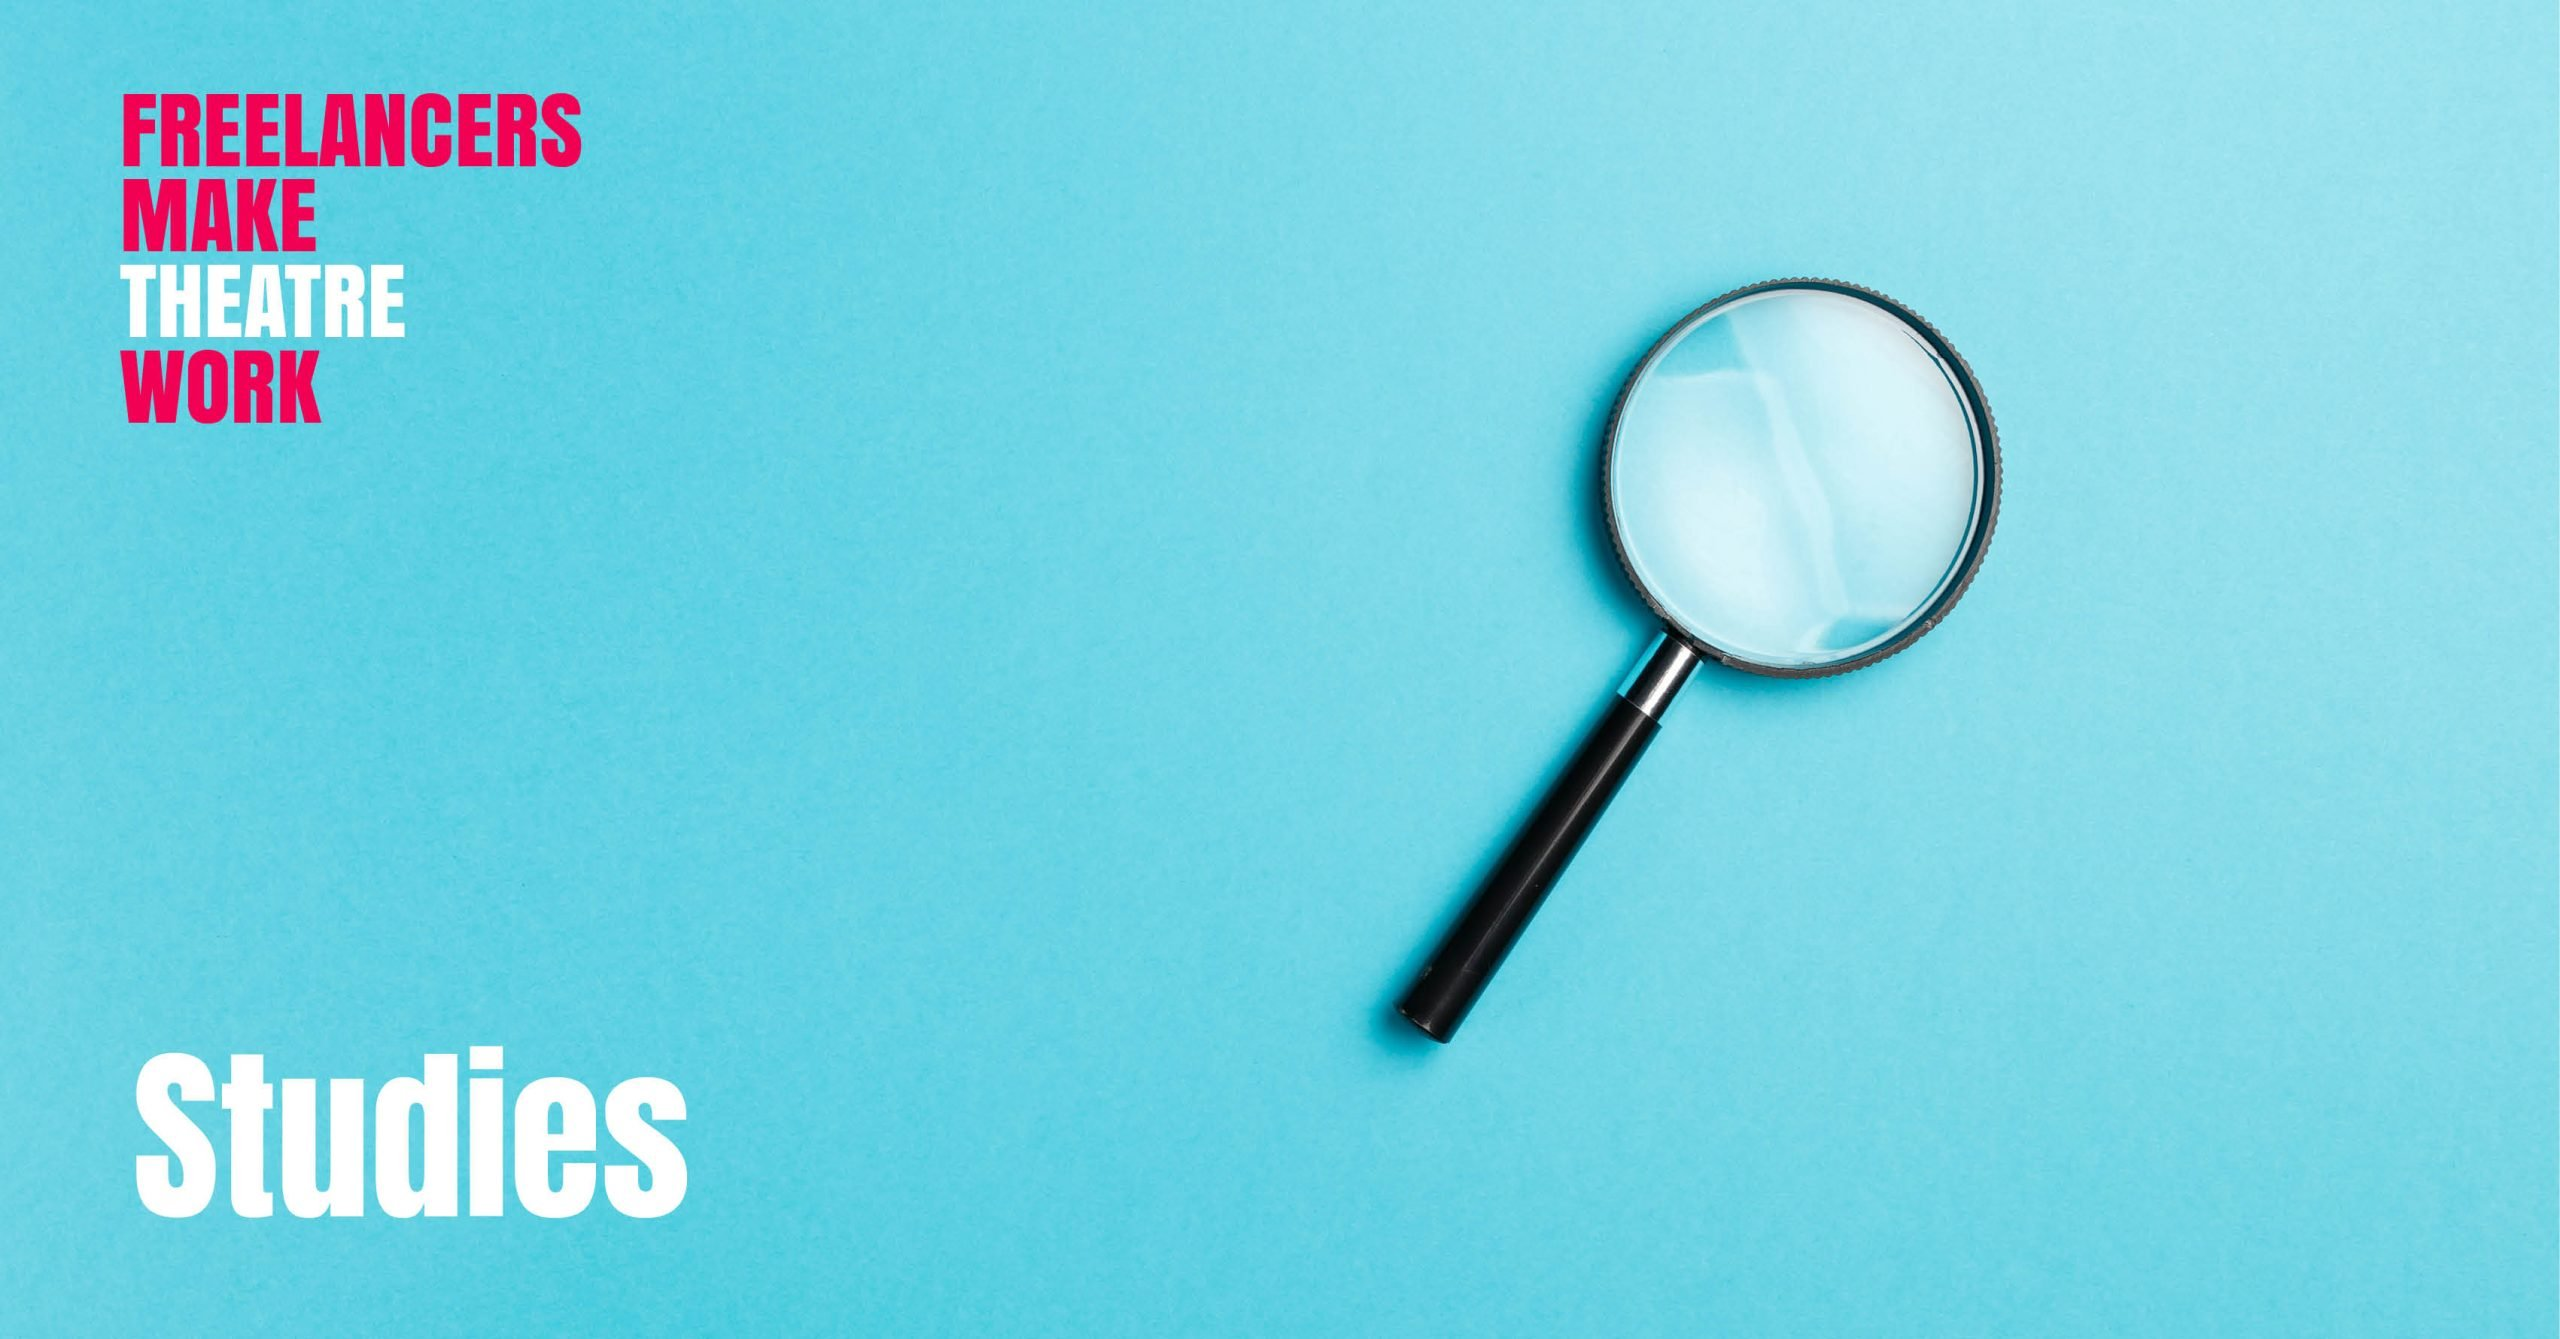 A magnifying glass on a blue background